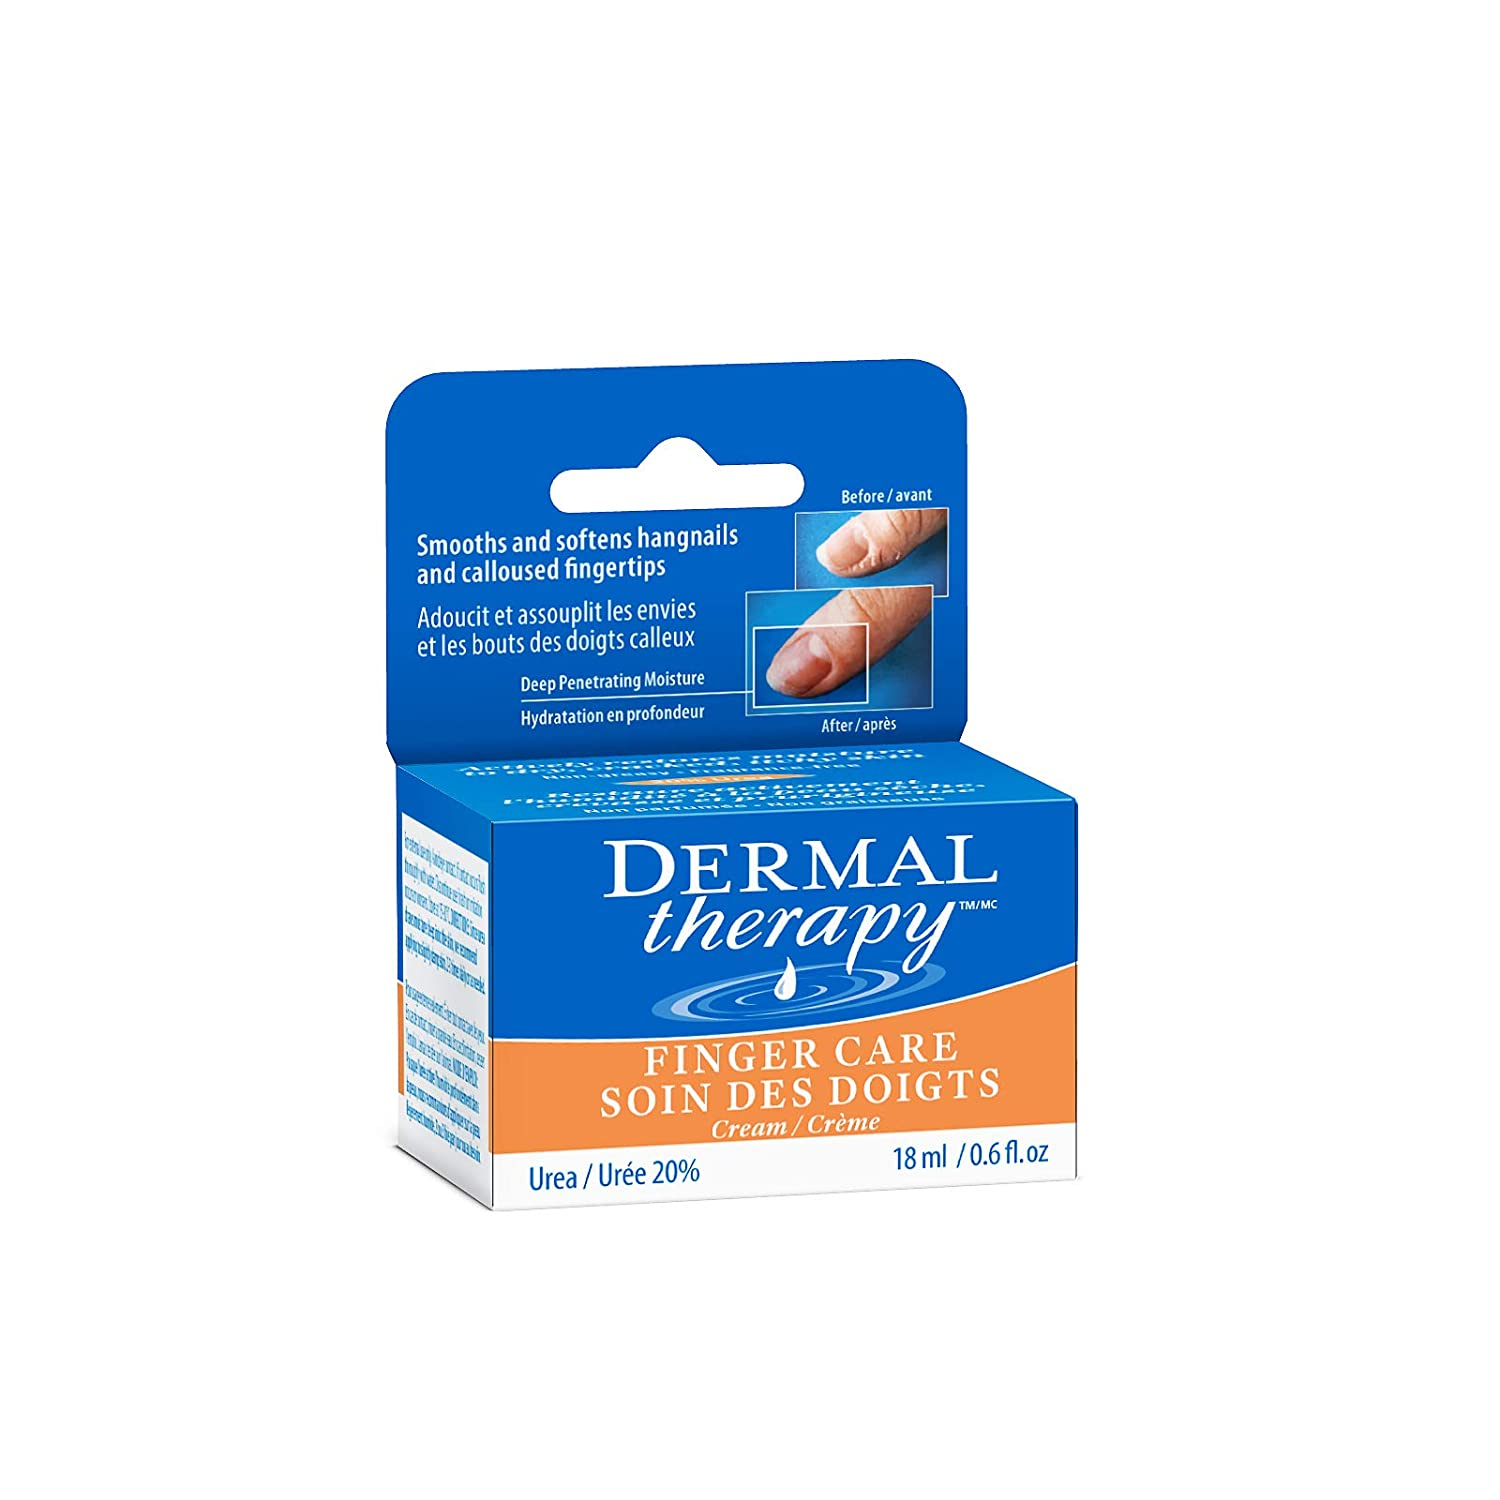 Dermal Therapy Finger Care Cream – Hydrating Treatment Repairs Skin to Heal Dry, Cracked Fingertips Resulting from Frequently Washed/Cleaned Hands | 20% Urea and 6% Alpha Hydroxy Acids | 0.6 fl. oz : Beauty